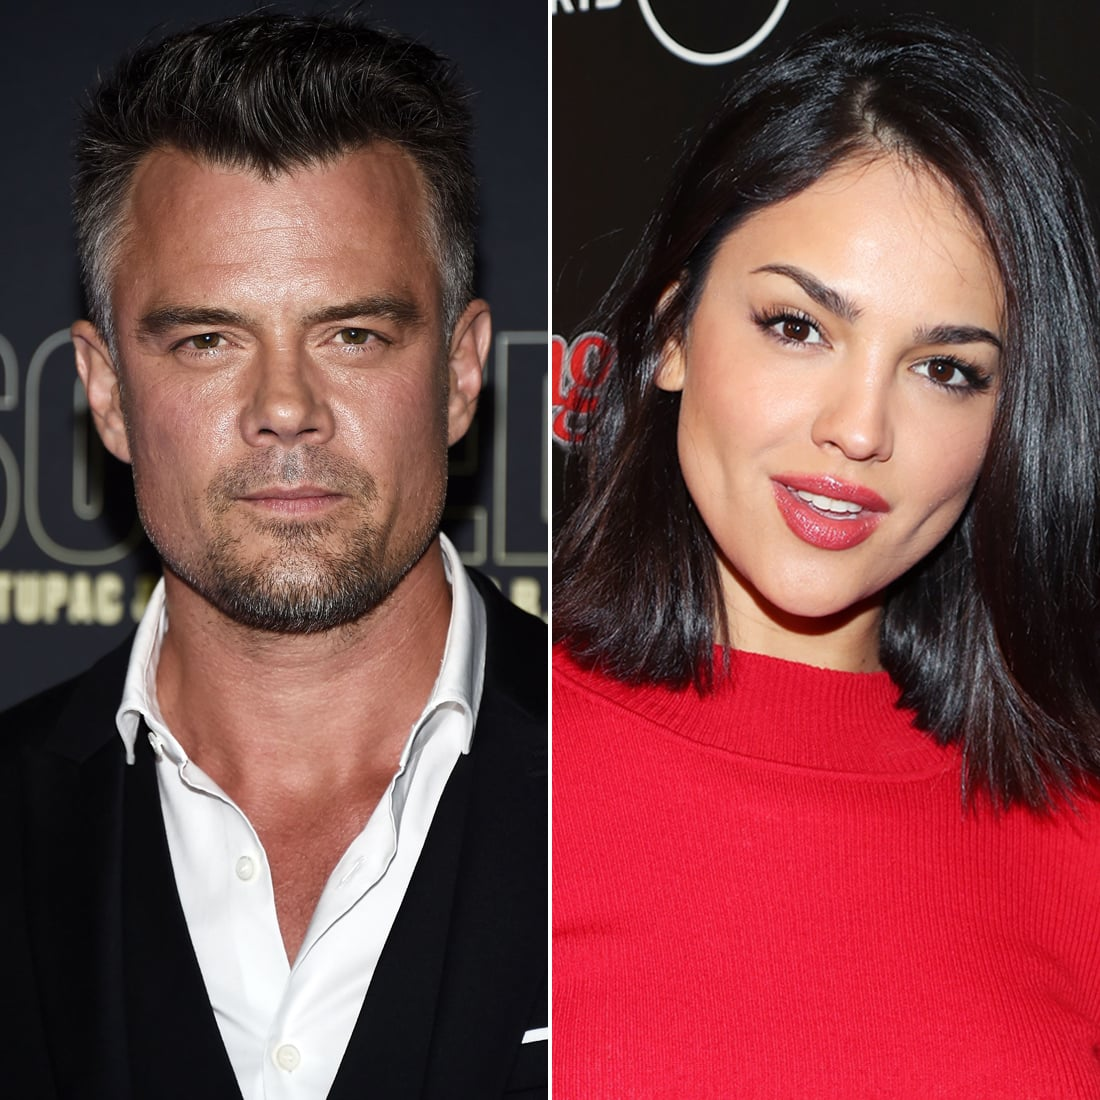 Josh Duhamel reportedly dating Eiza González following Fergie split